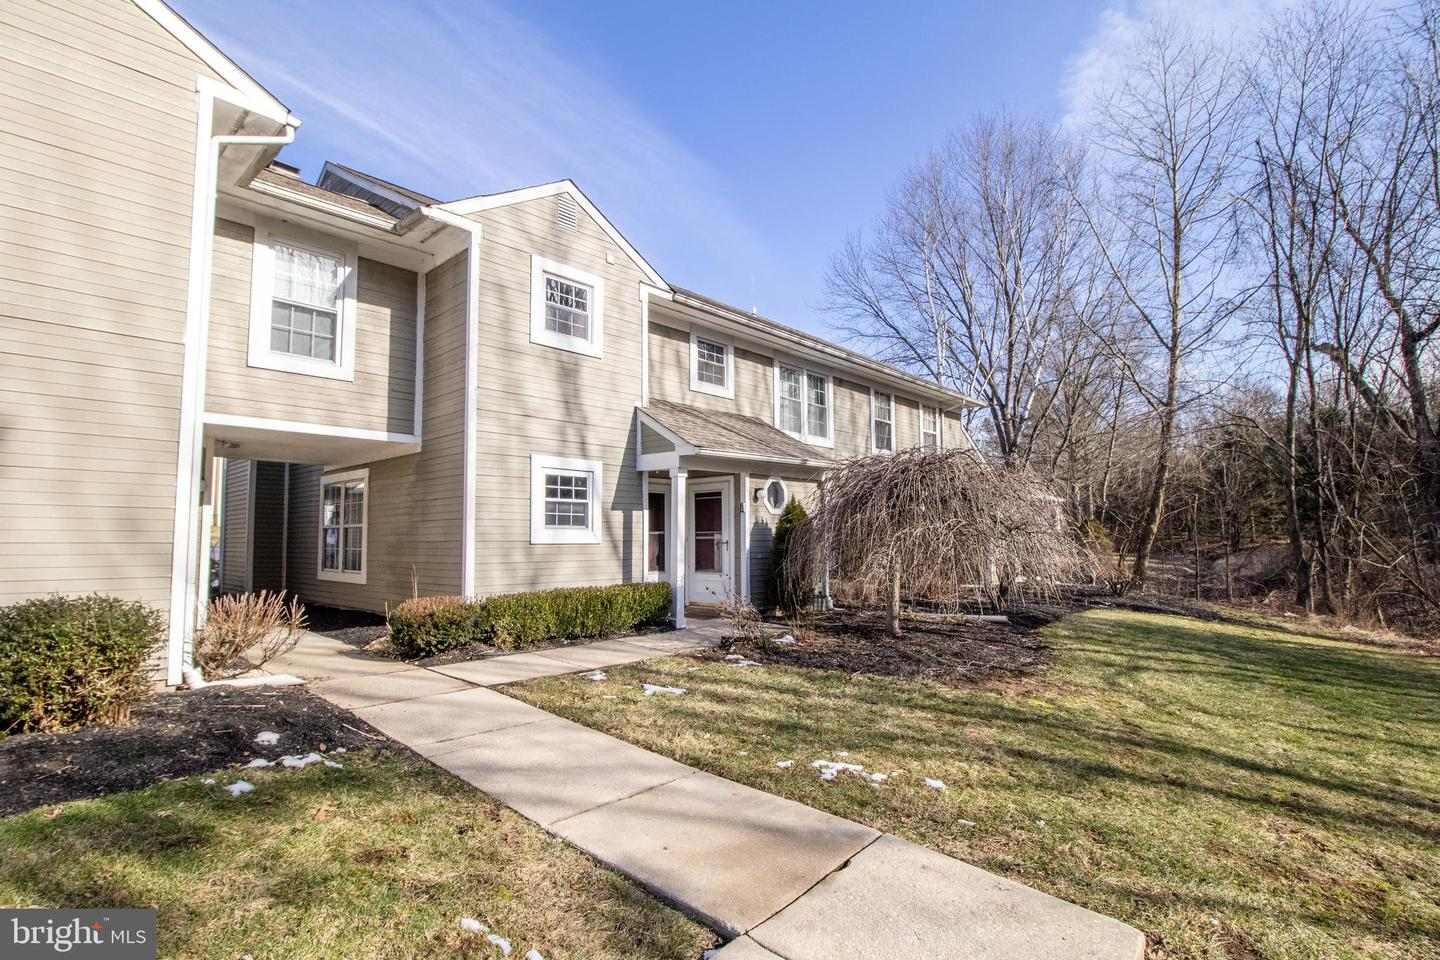 730 Scotch Way West Chester , PA 19382